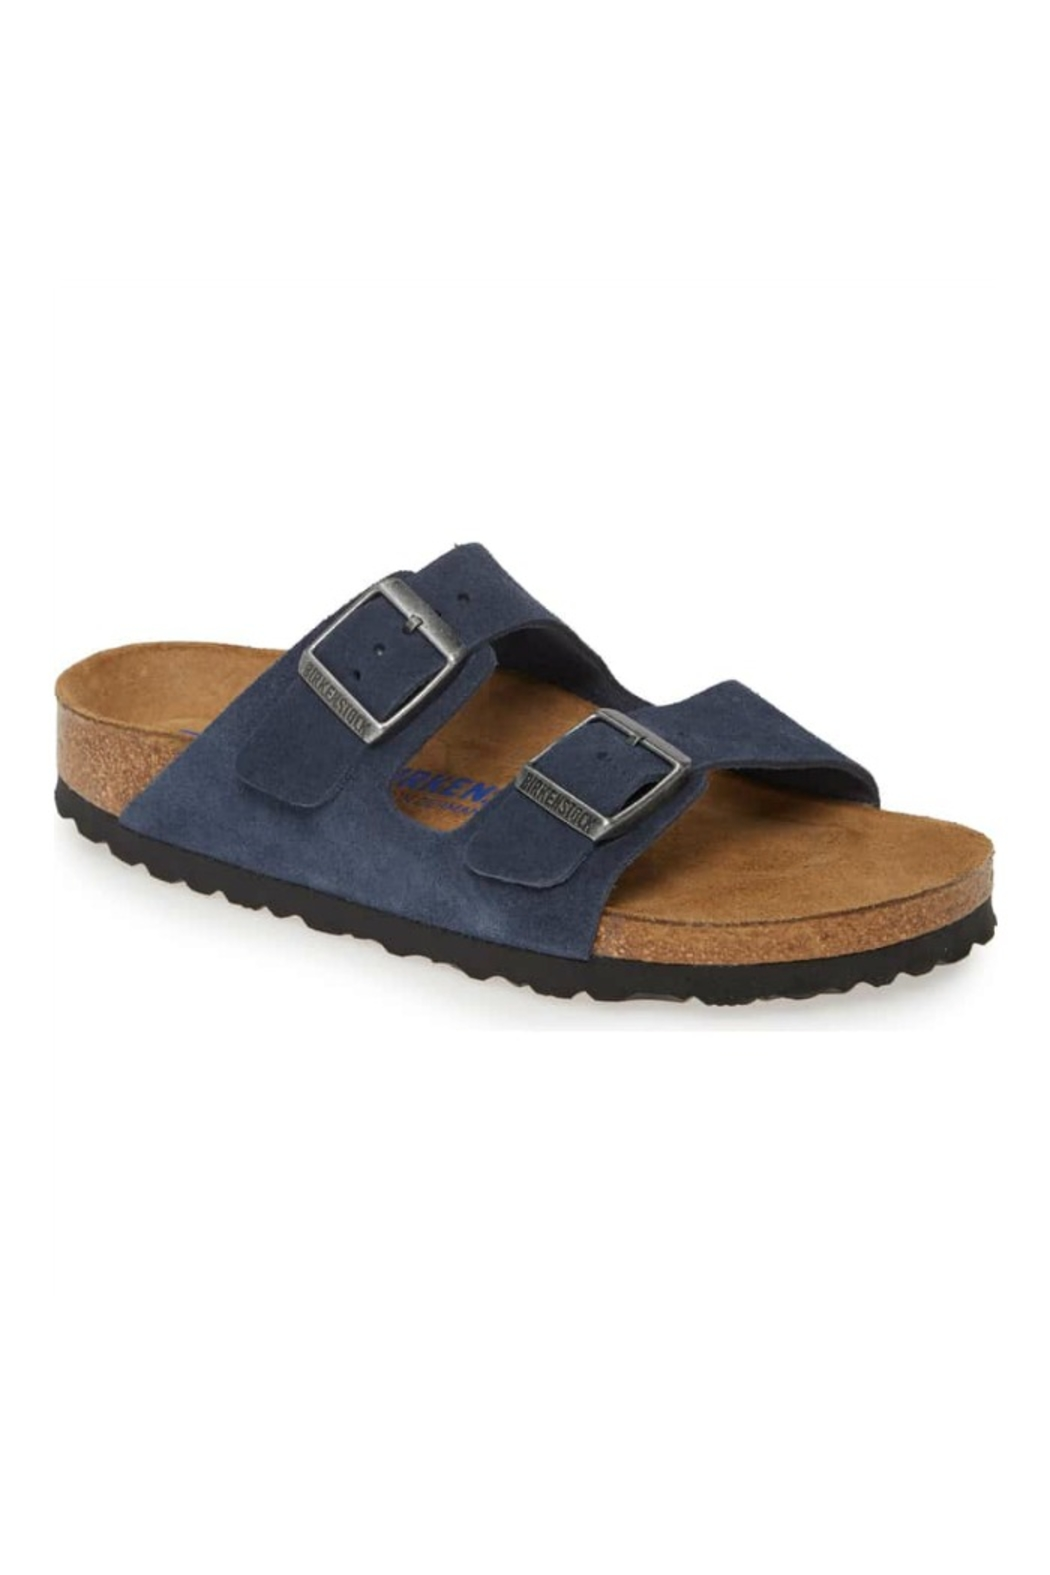 Birkenstock Arizona Soft - Main Image